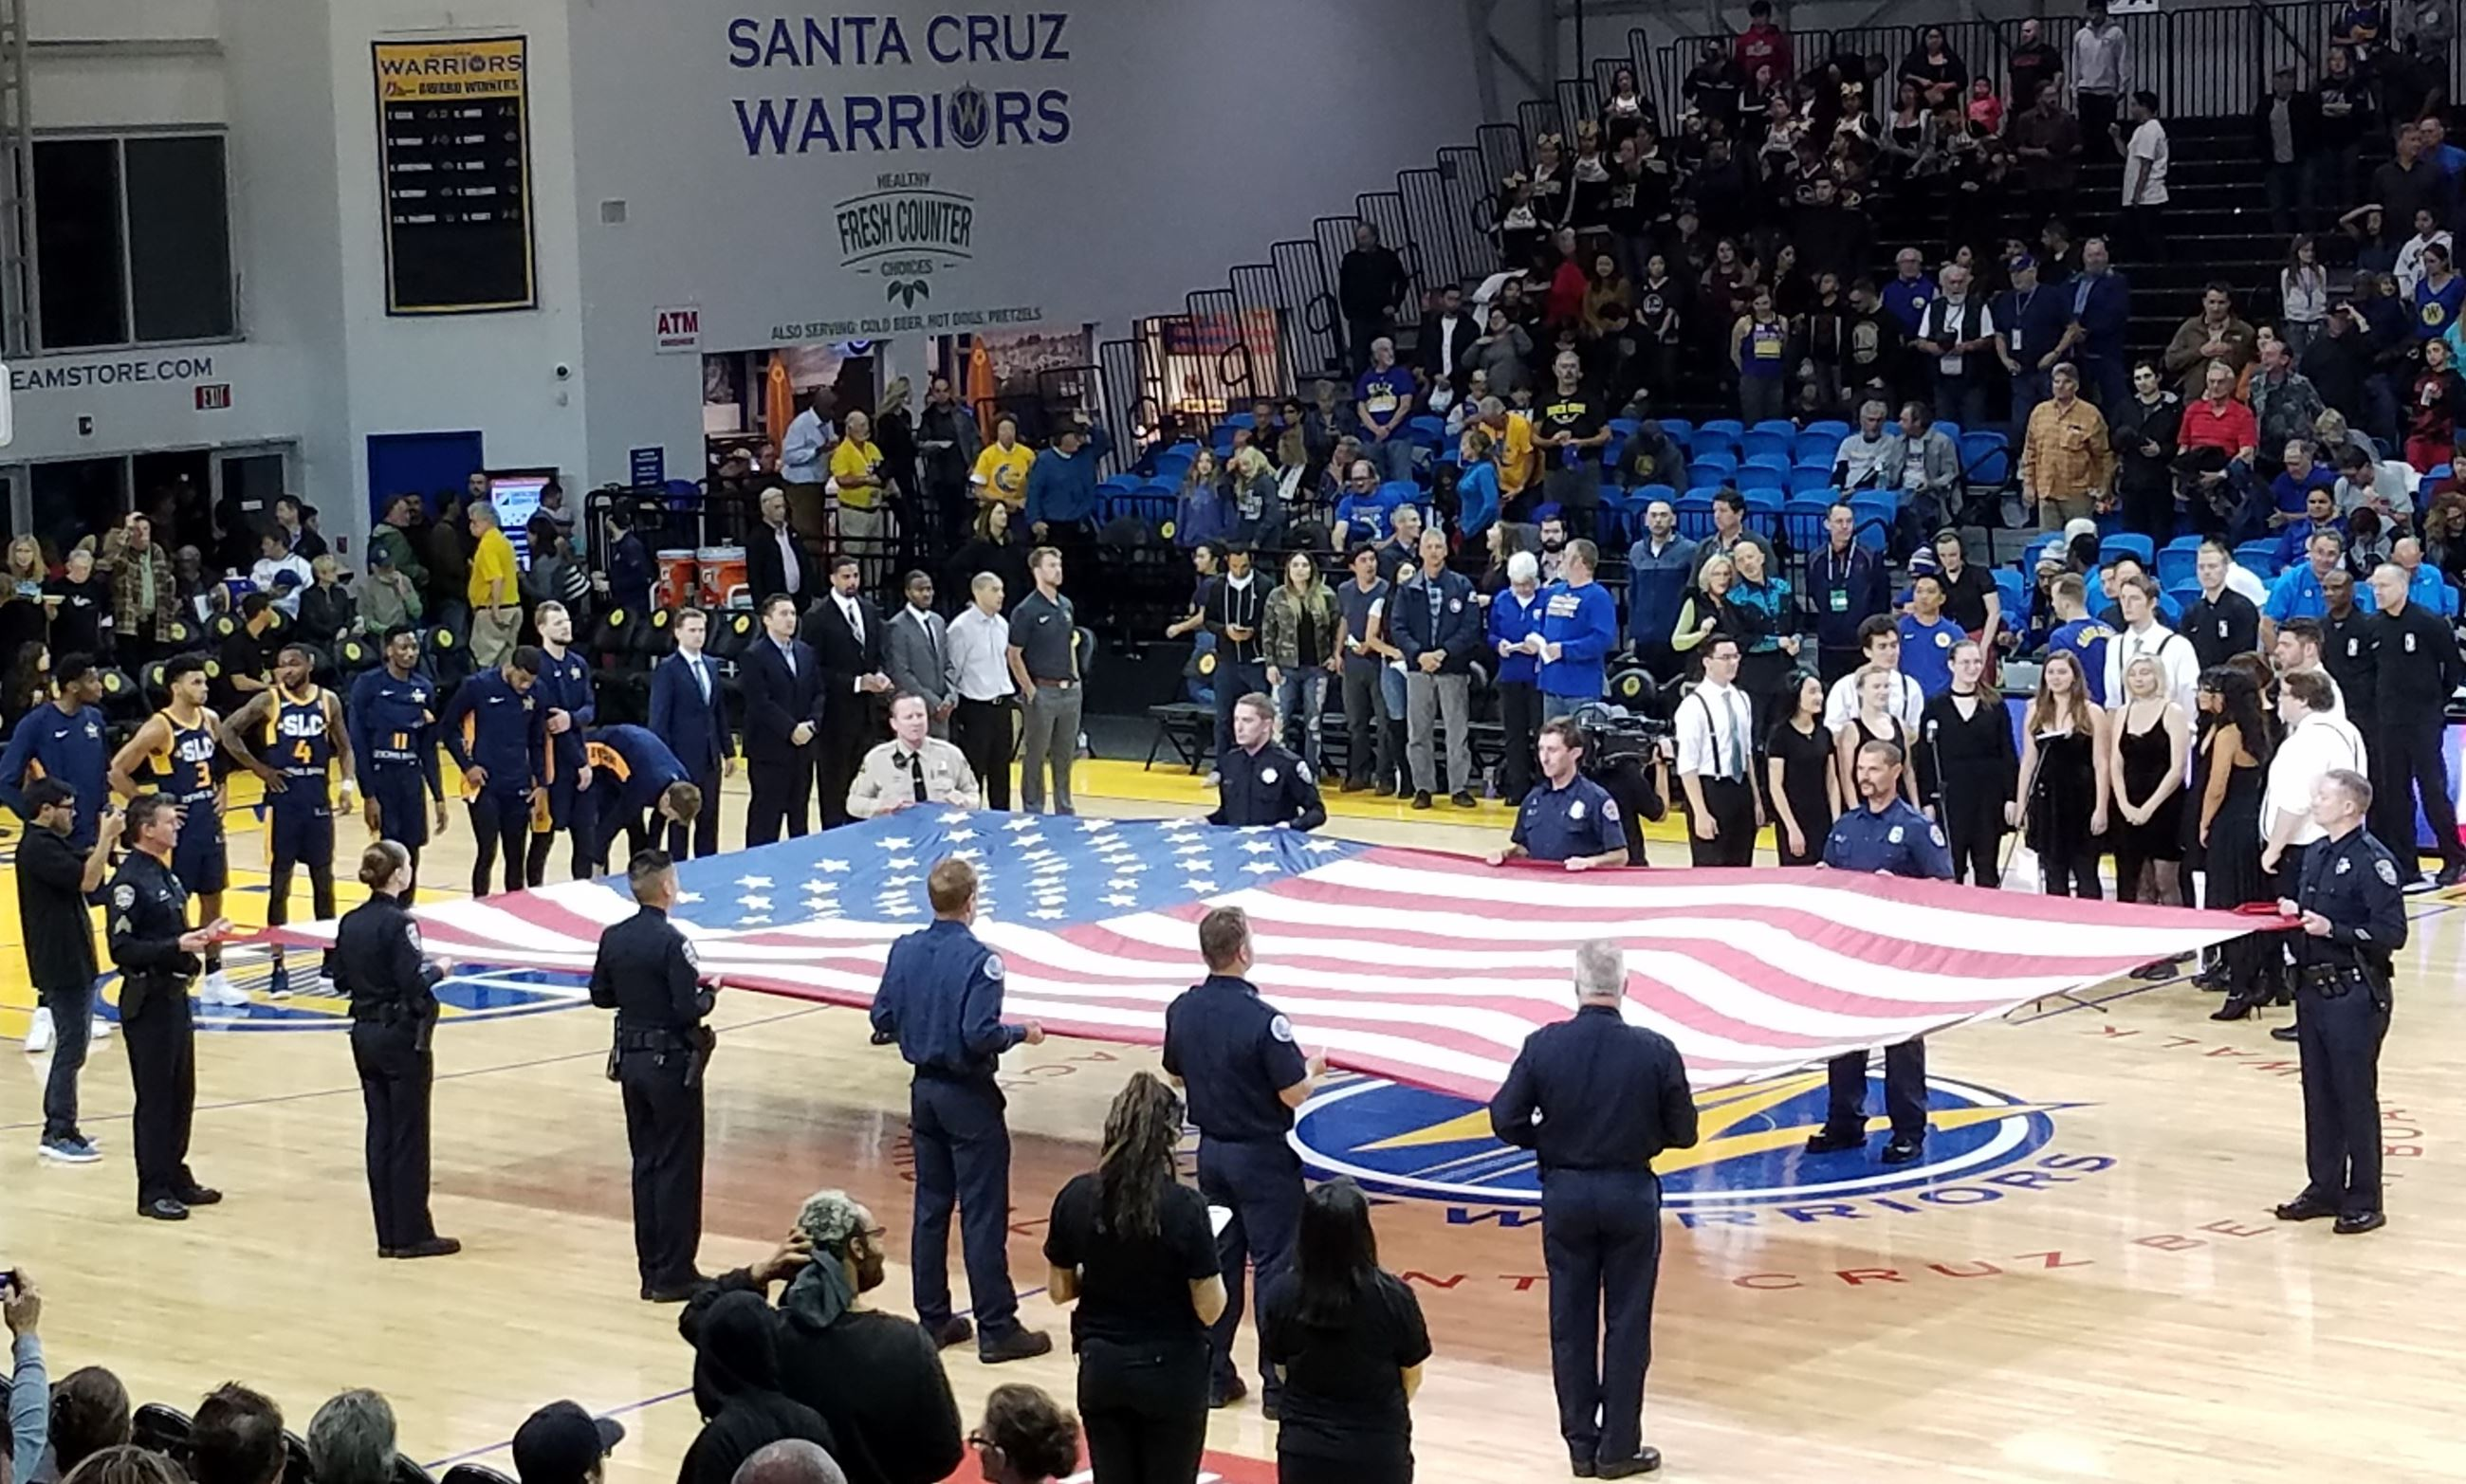 2018 SC Warriors Local Heroes Night with Flag